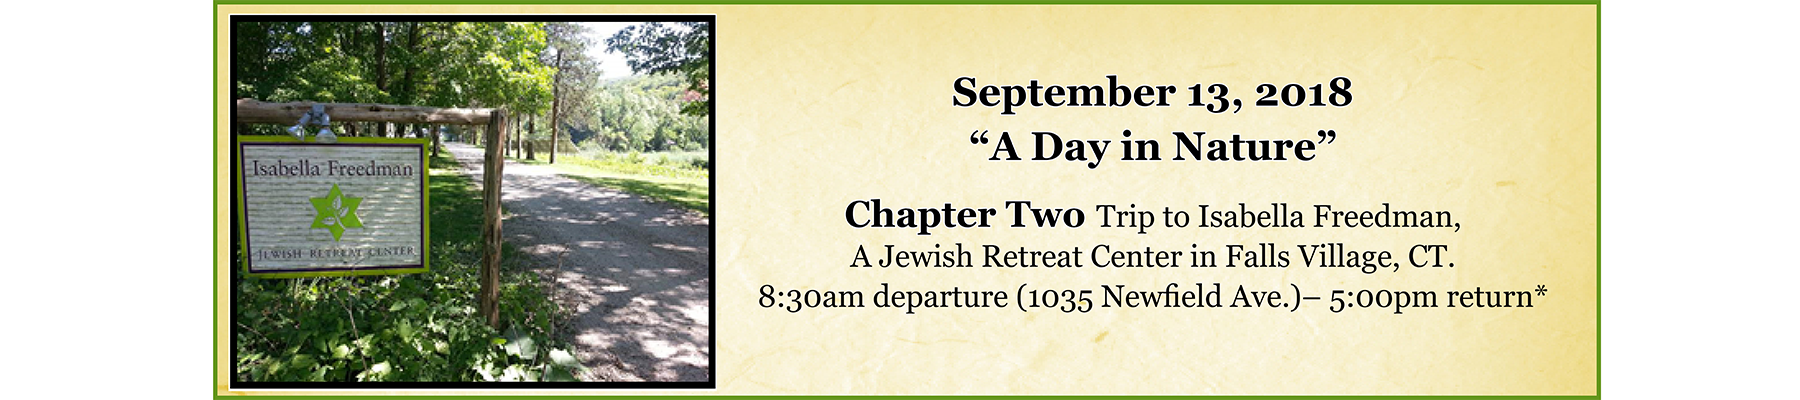 Chapter-Two-Isabella-Friedman-for-home-page-banner.png